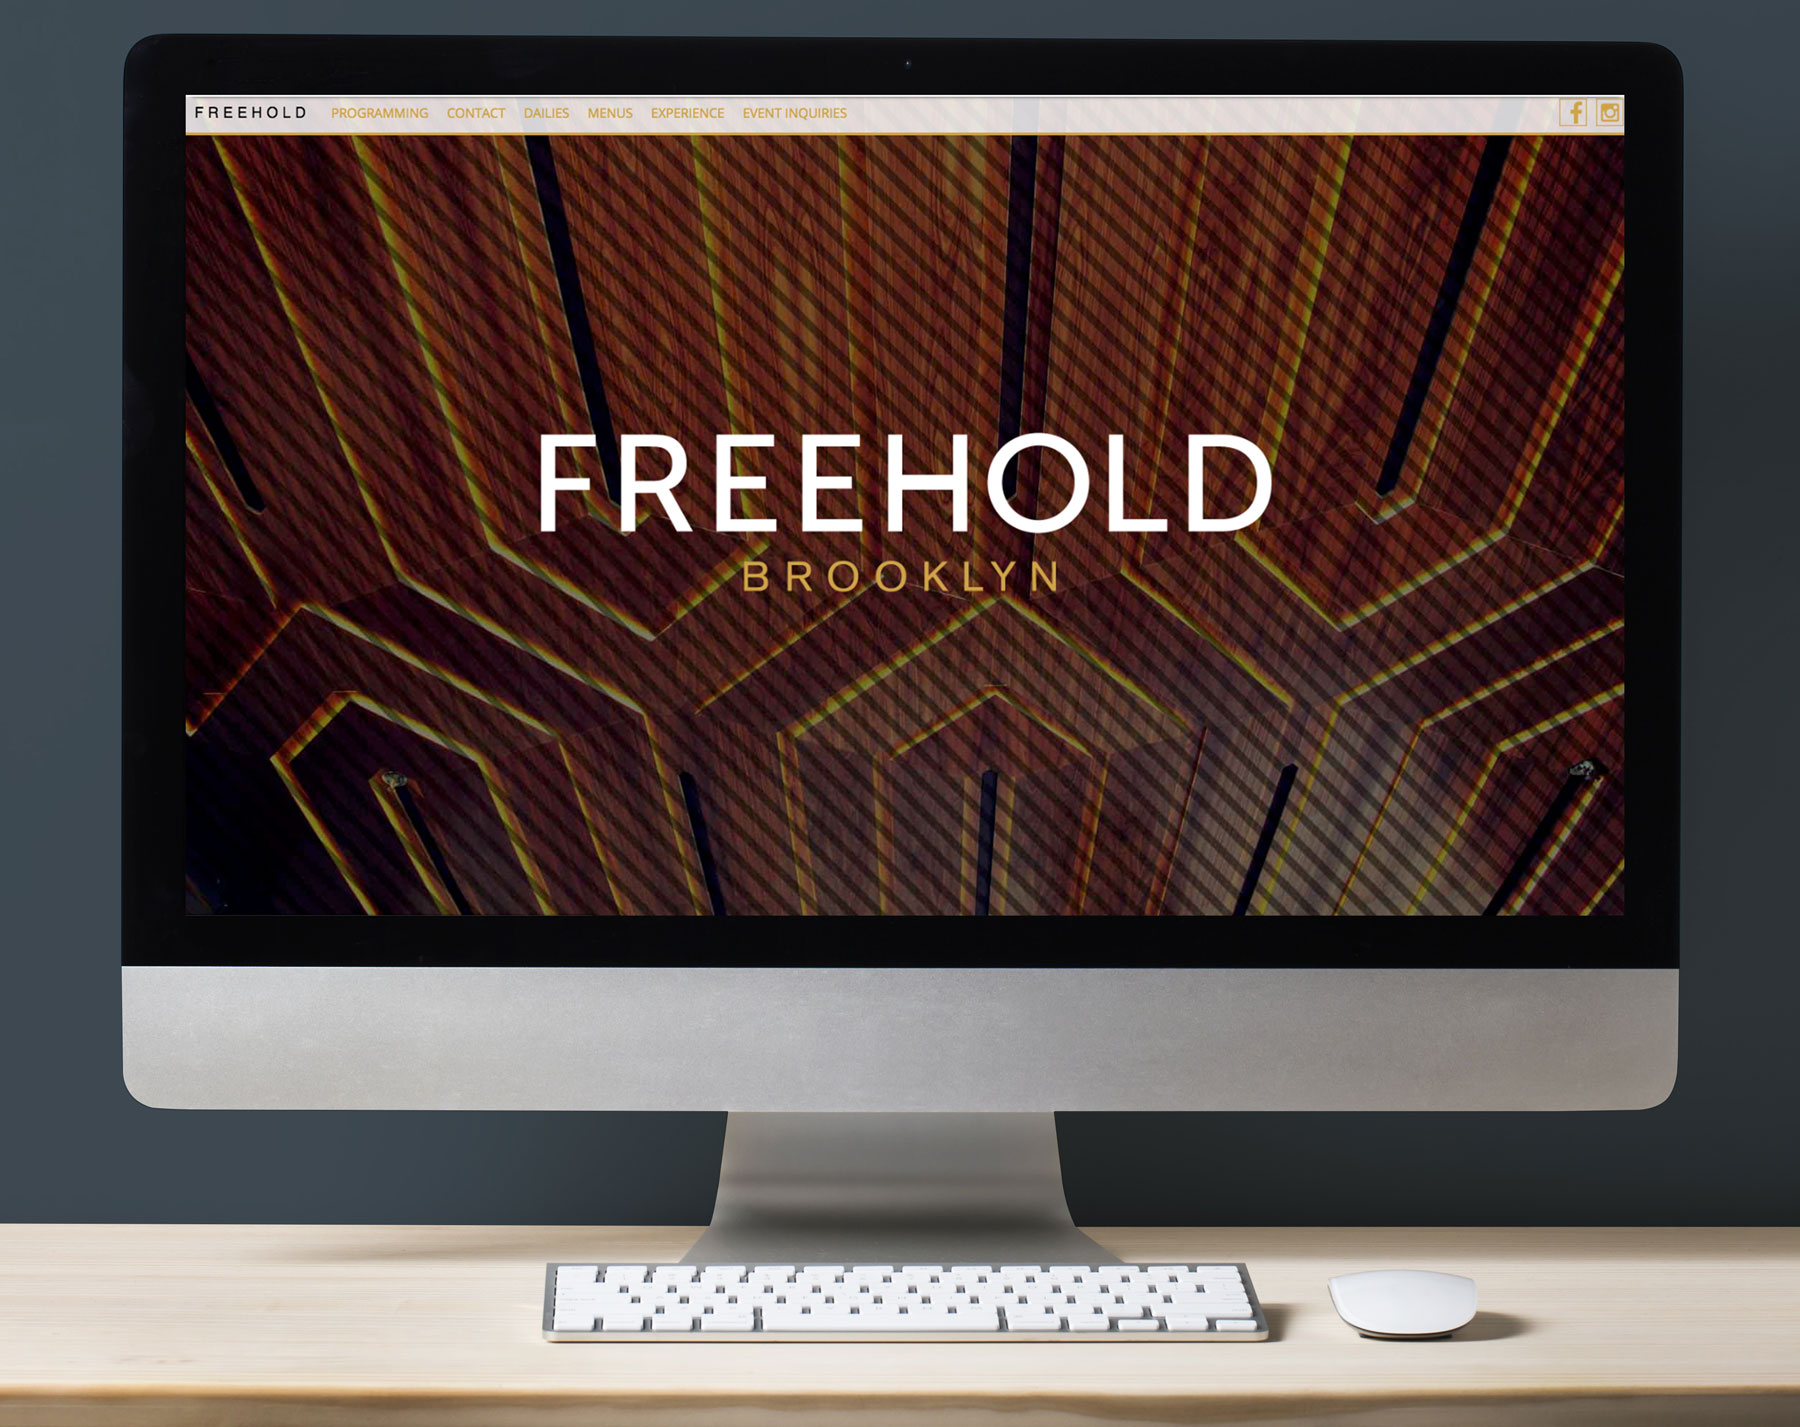 Design and implementation of the Freehold website